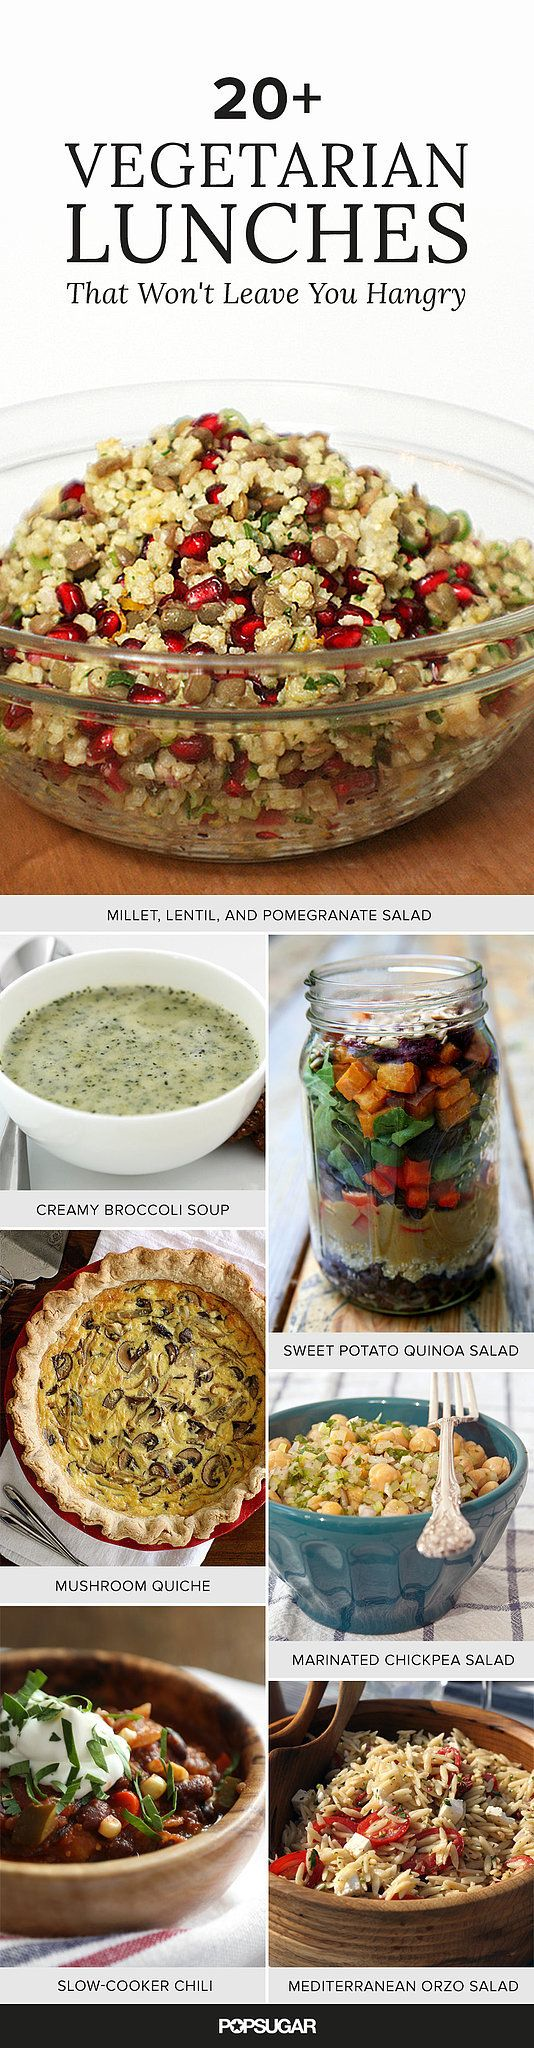 22 Vegetarian Brown-Bag Lunches That Won't Leave You Hungry an Hour Later ___ Raise your hand if you're sick of packing your lunch only to find yourself raiding your office's chips and candy stash by three in the afternoon. These recipes, ranging from a hearty soba noodle salad to a food-coma-free creamy broccoli soup (the secret: Greek yogurt), will solve your problem, and they're all vegetarian to boot.